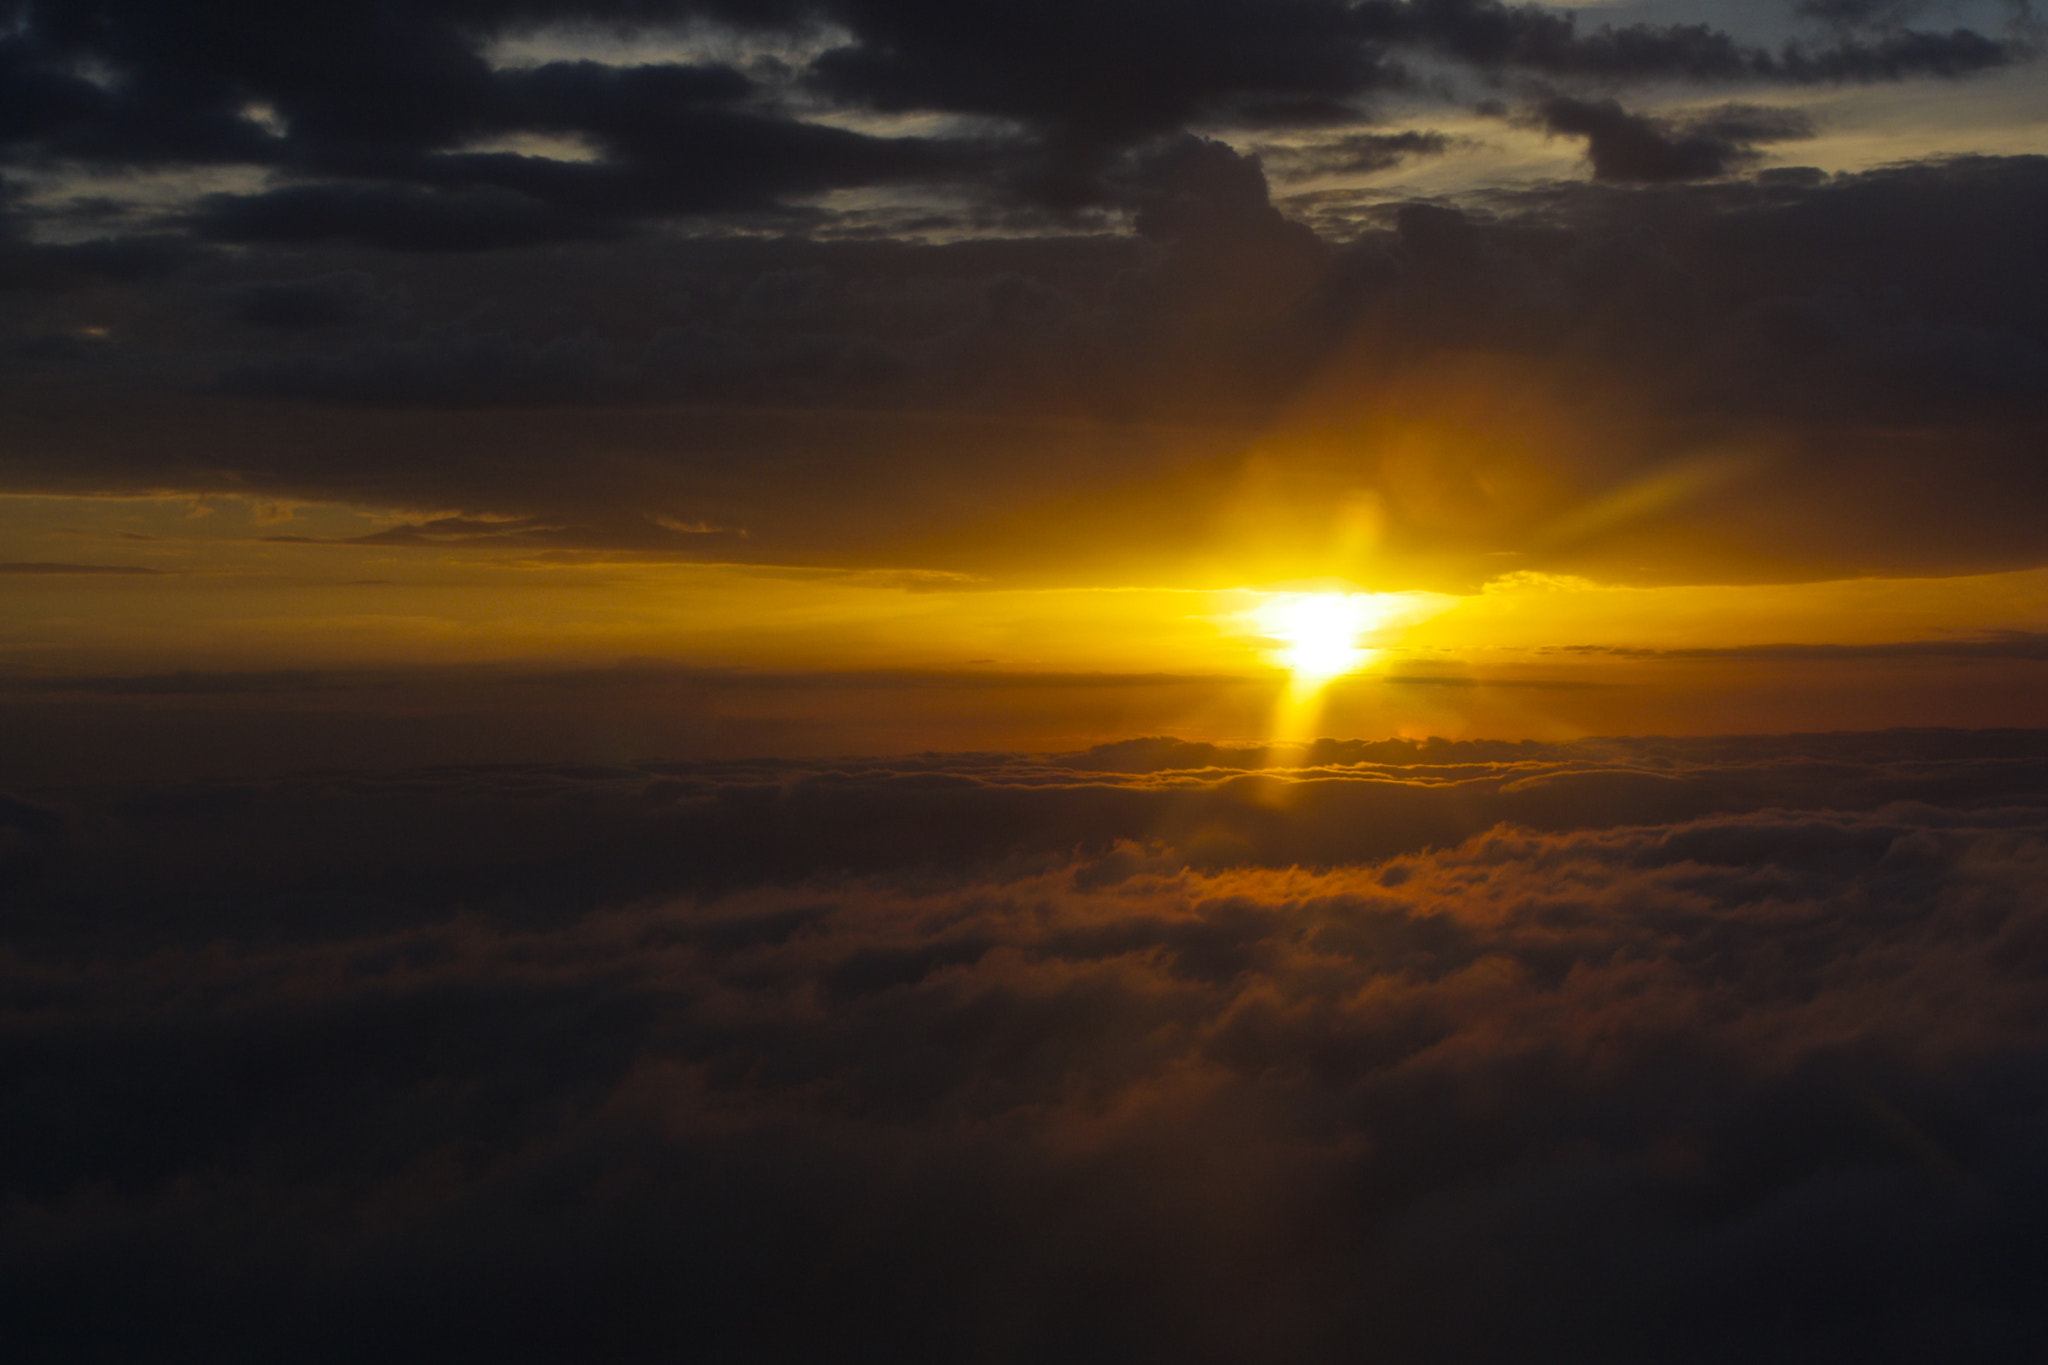 Photograph Sunset in the air by Marco Guerreiro on 500px